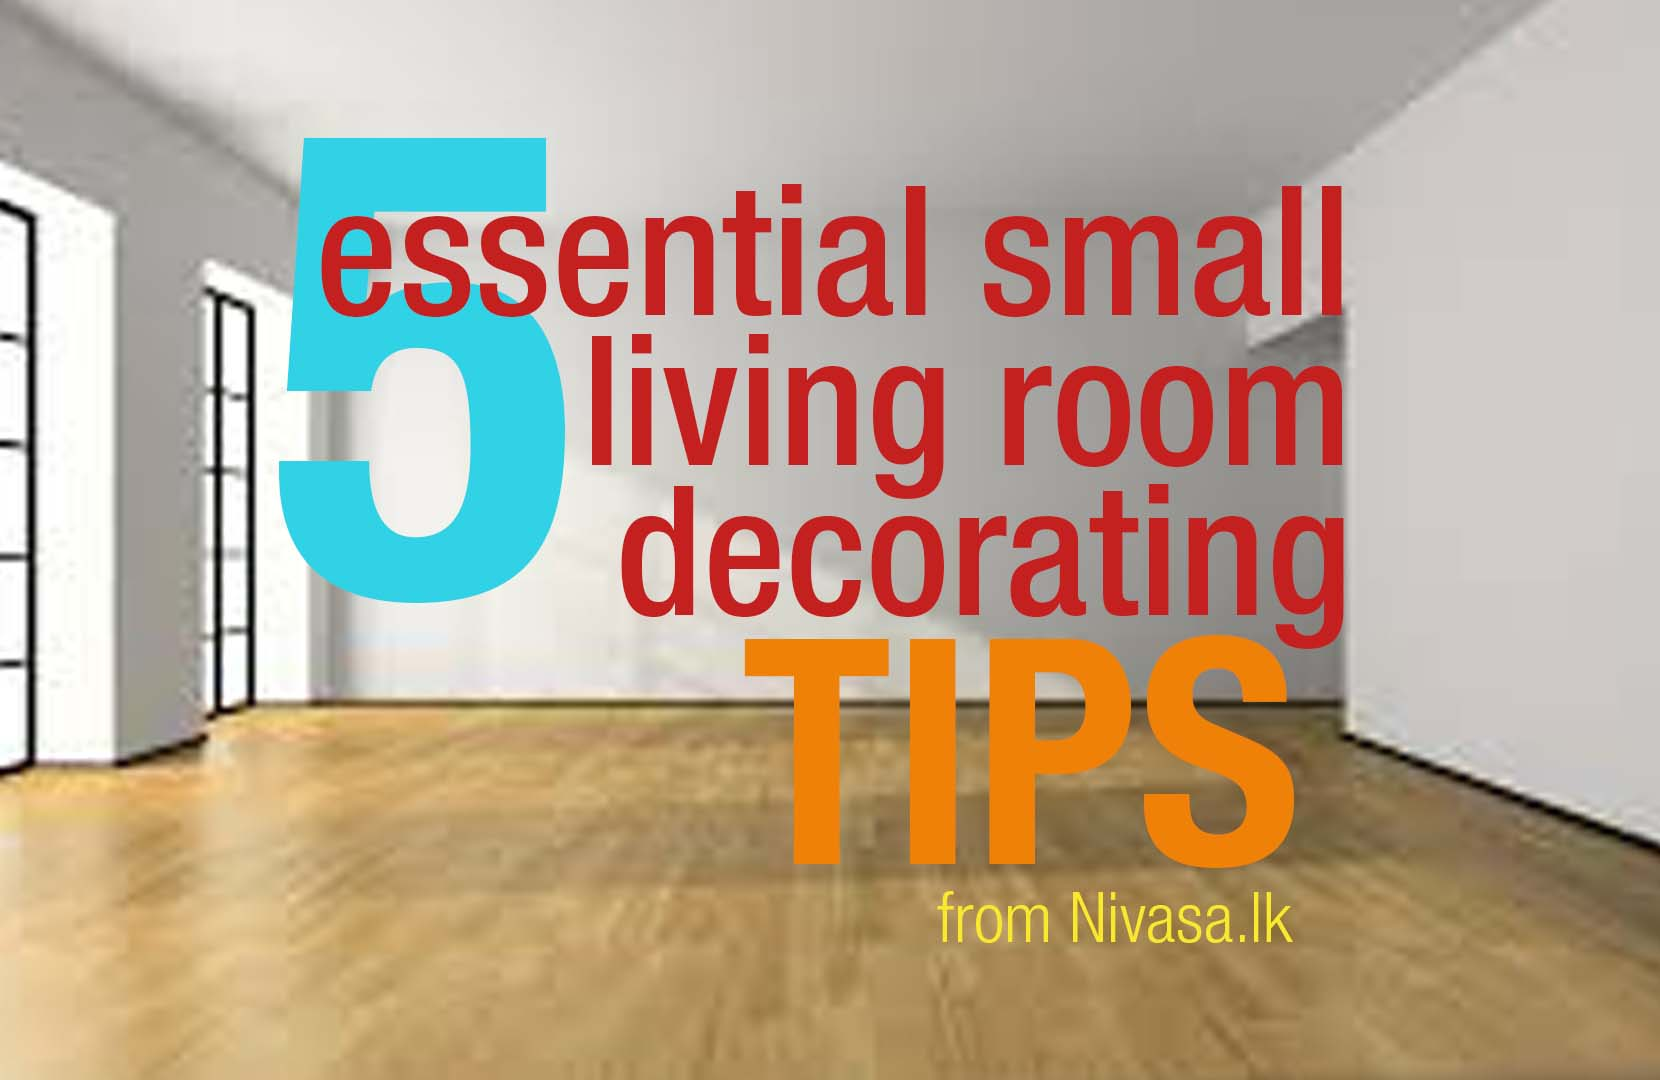 Let's decorate a small space living room